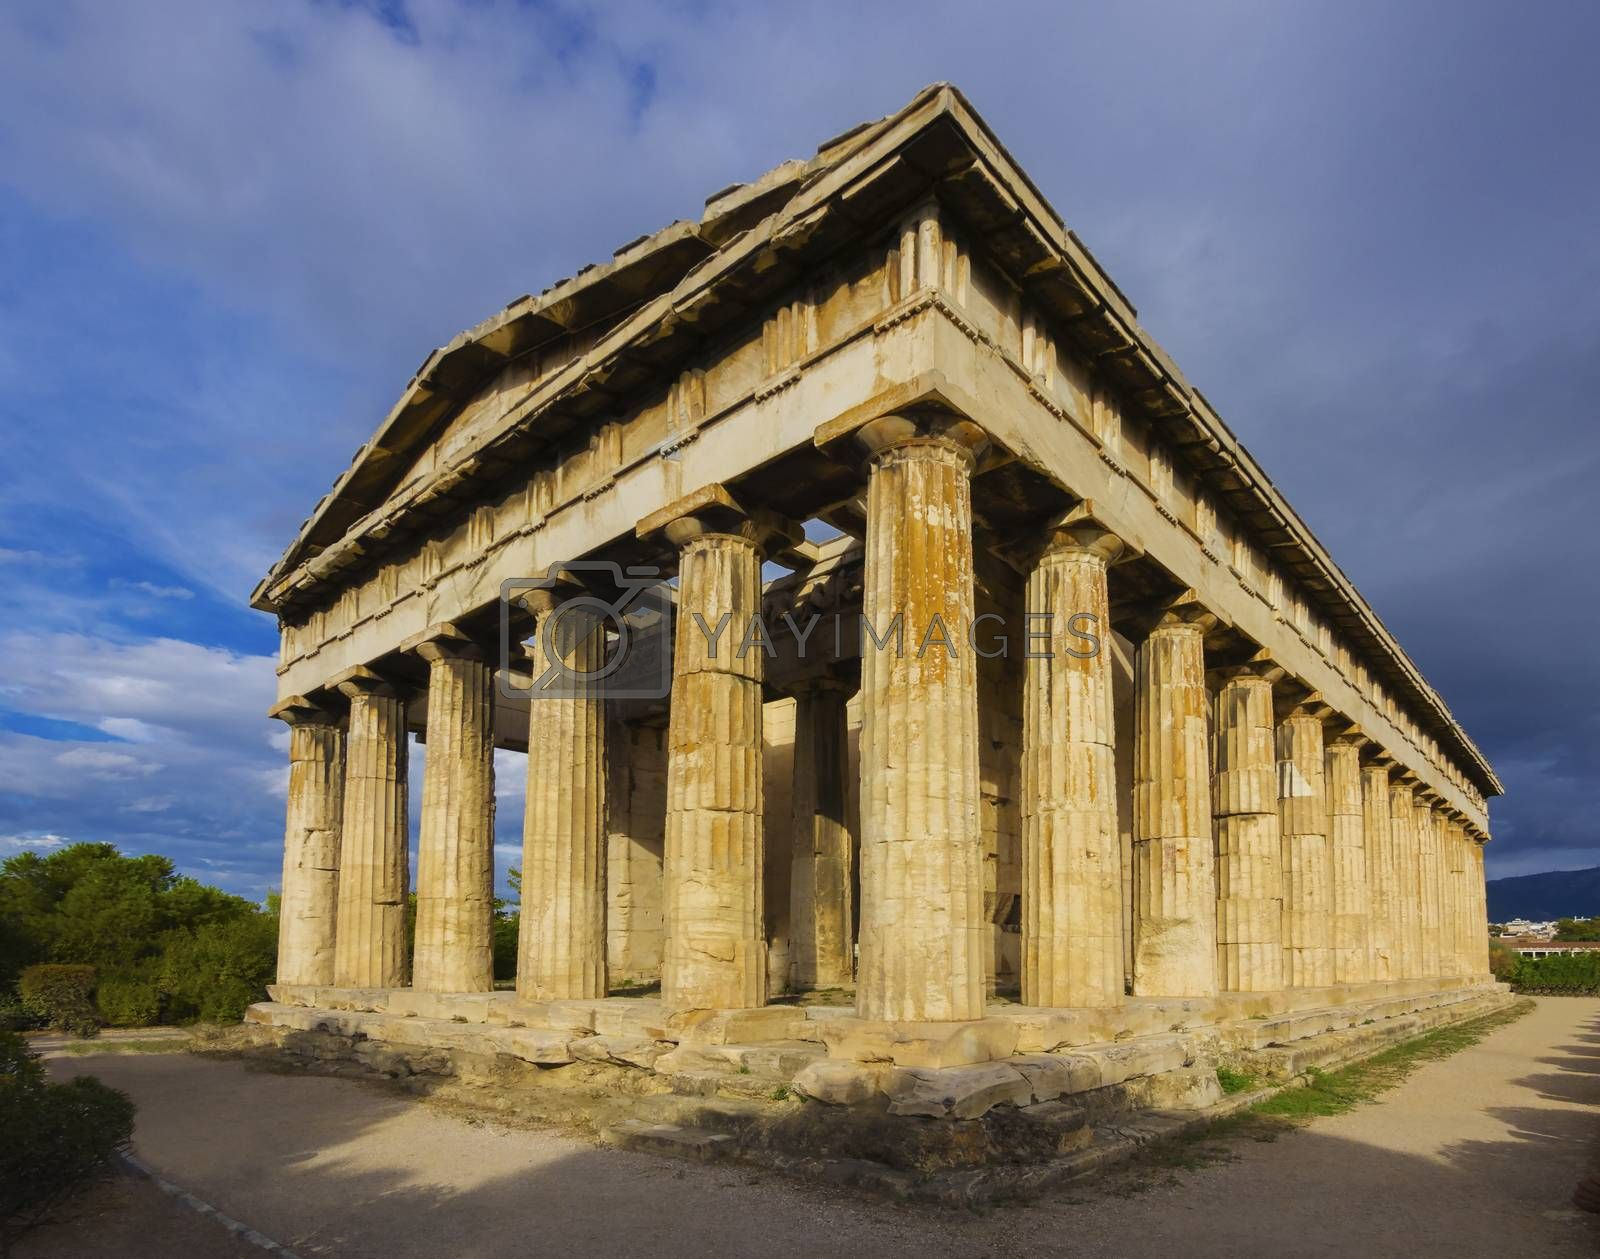 Temple of Hephaistos, Acropolis,Athens, Greece by f/2sumicron